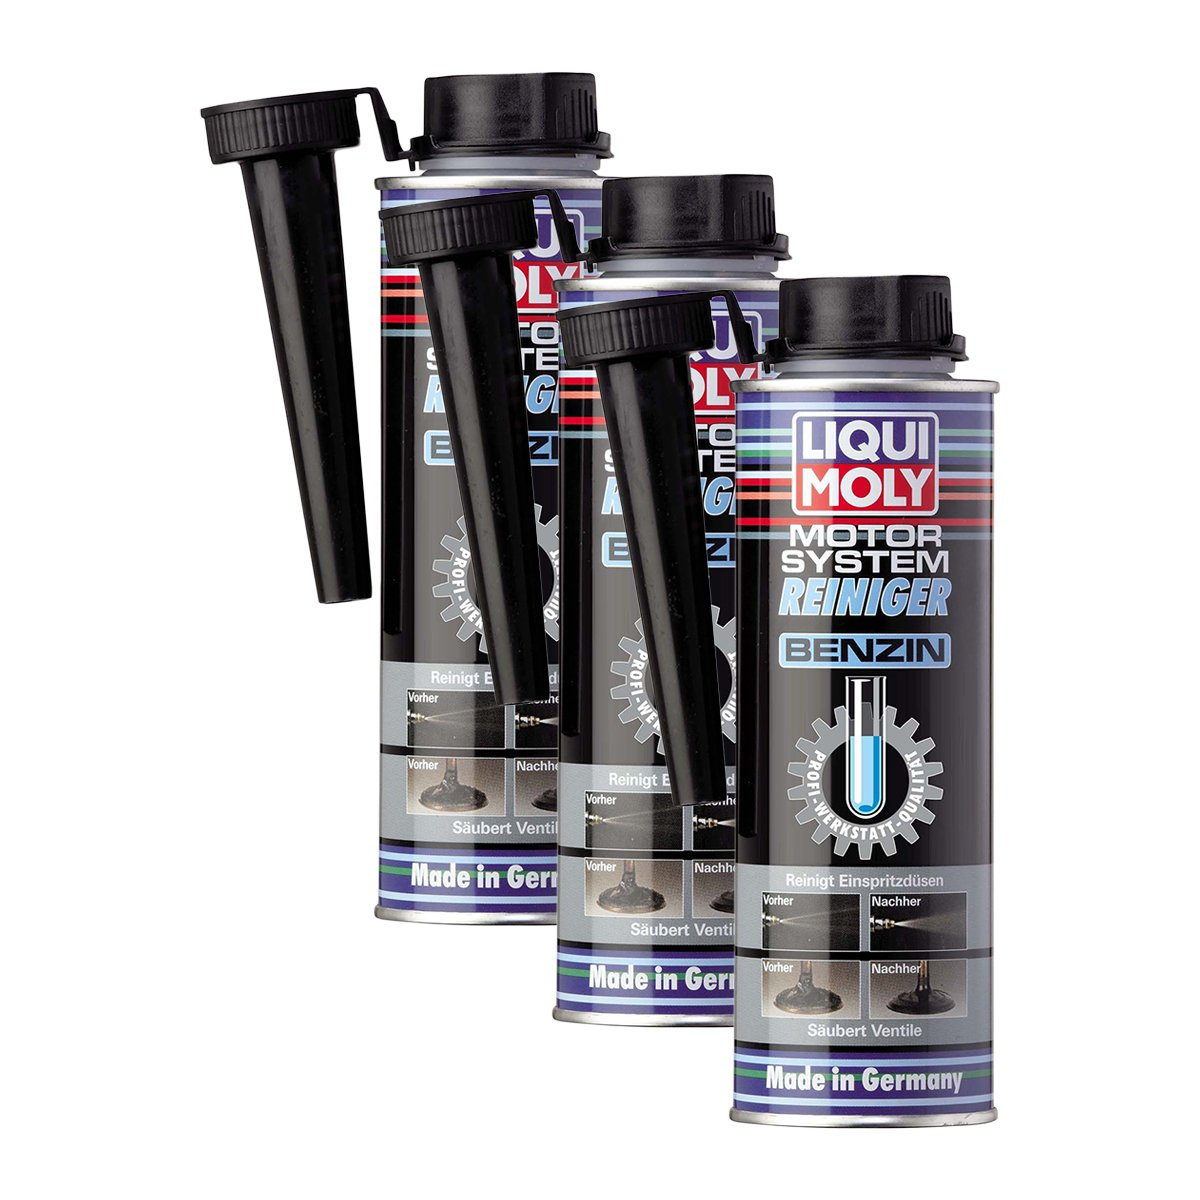 3x liqui moly 5129 motor system reiniger benzin additiv 300ml. Black Bedroom Furniture Sets. Home Design Ideas